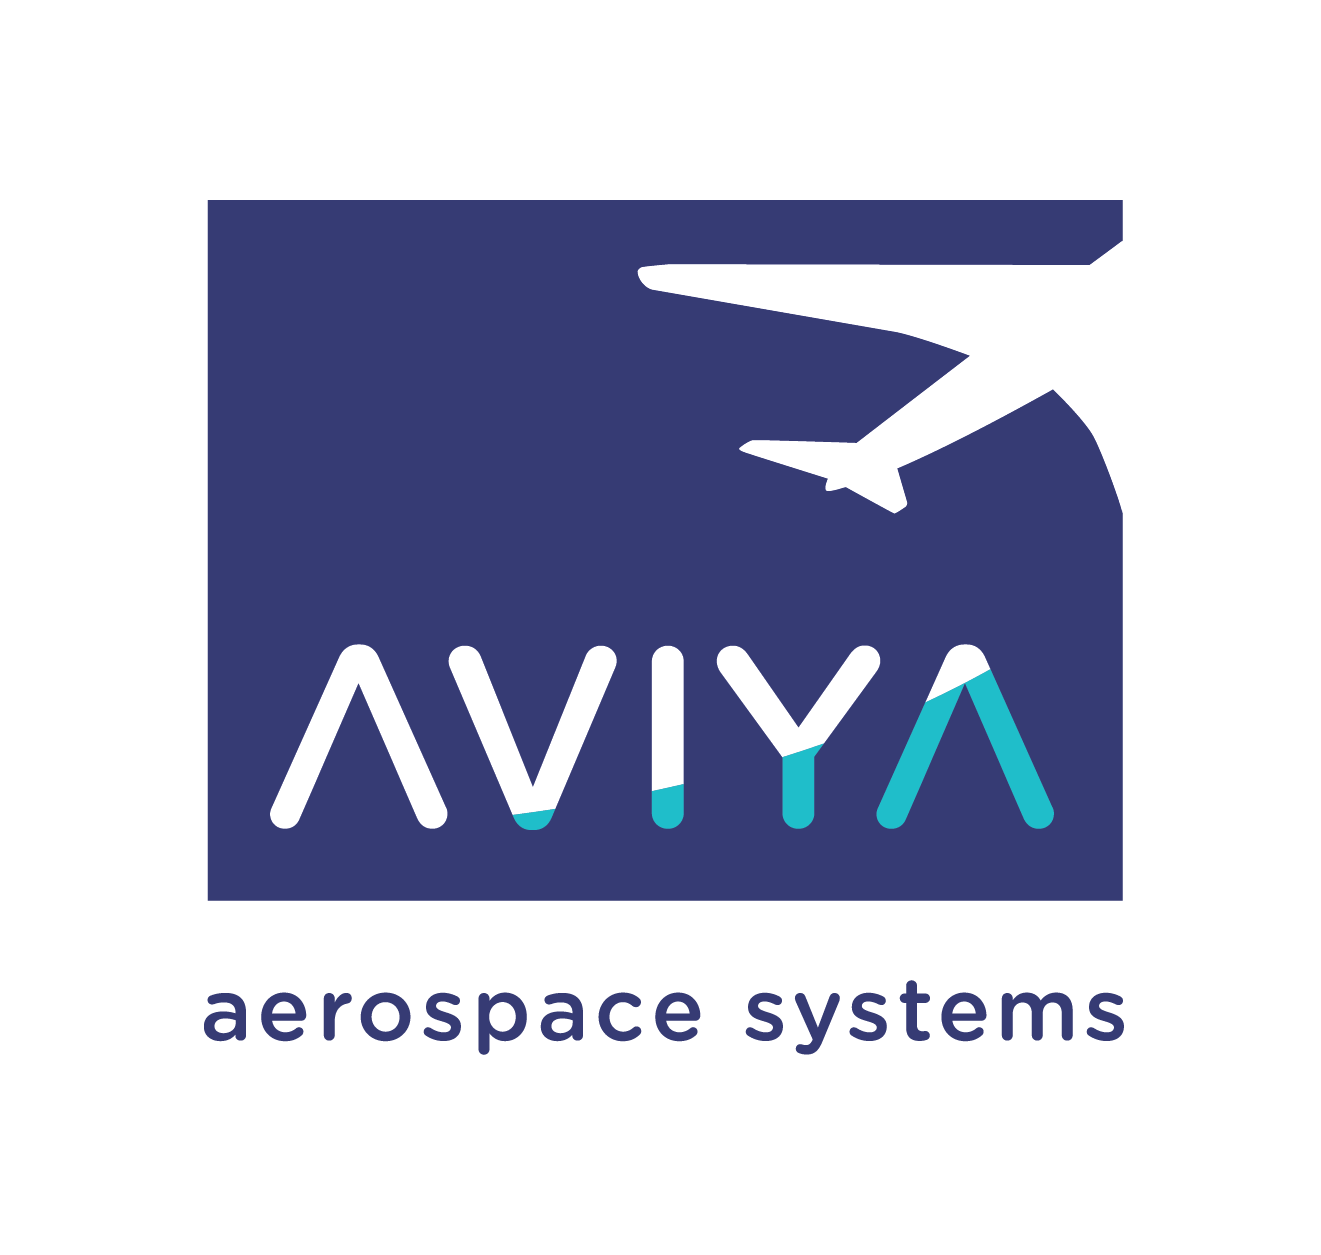 Aviya Aerospace Systems logo